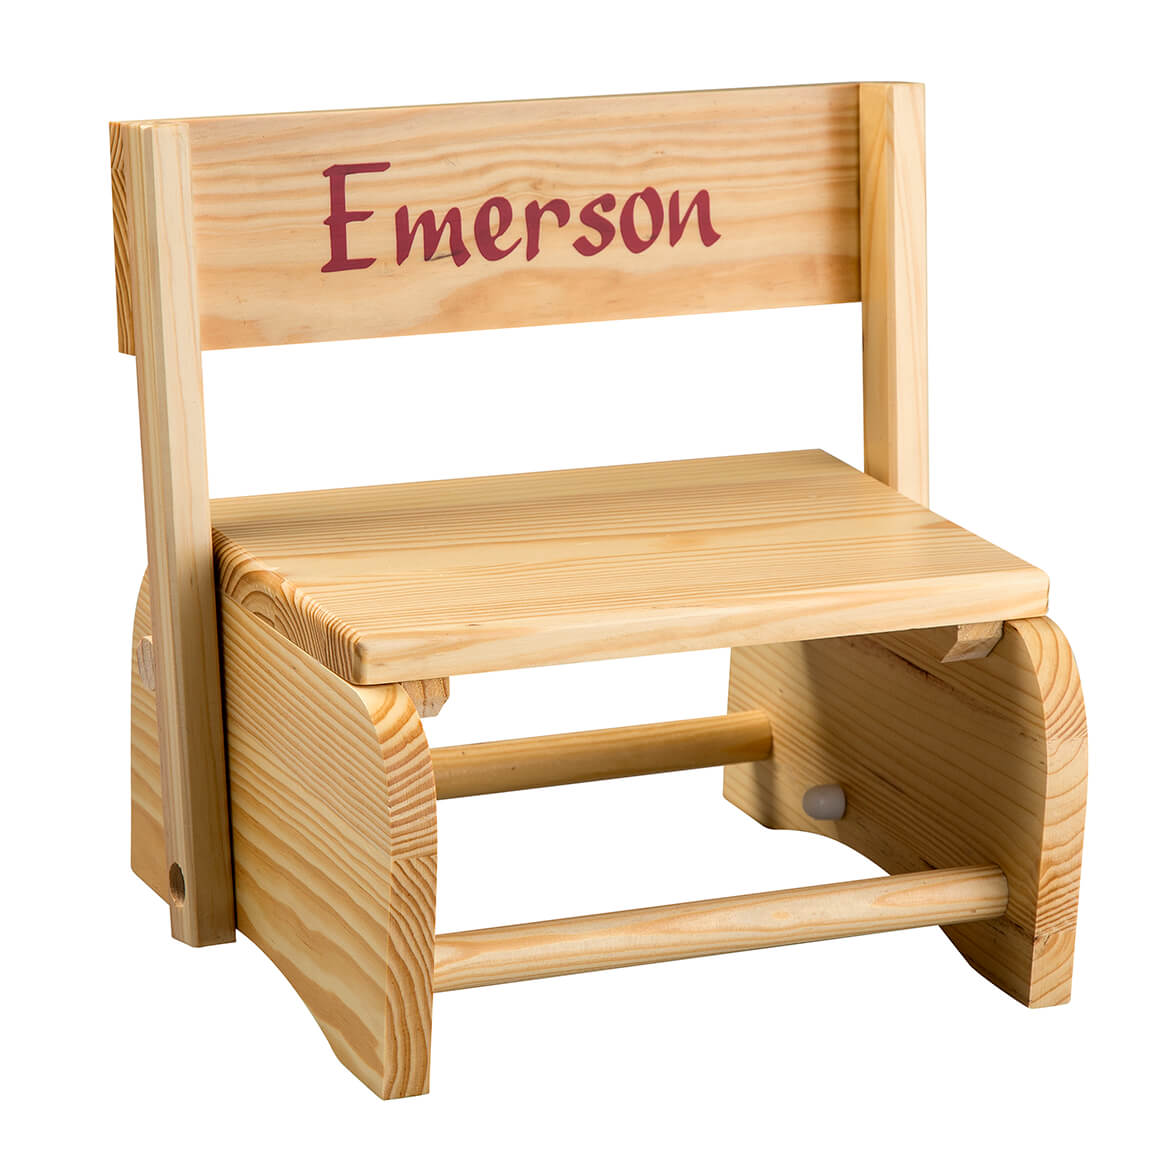 Personalized Child's Wooden Chair